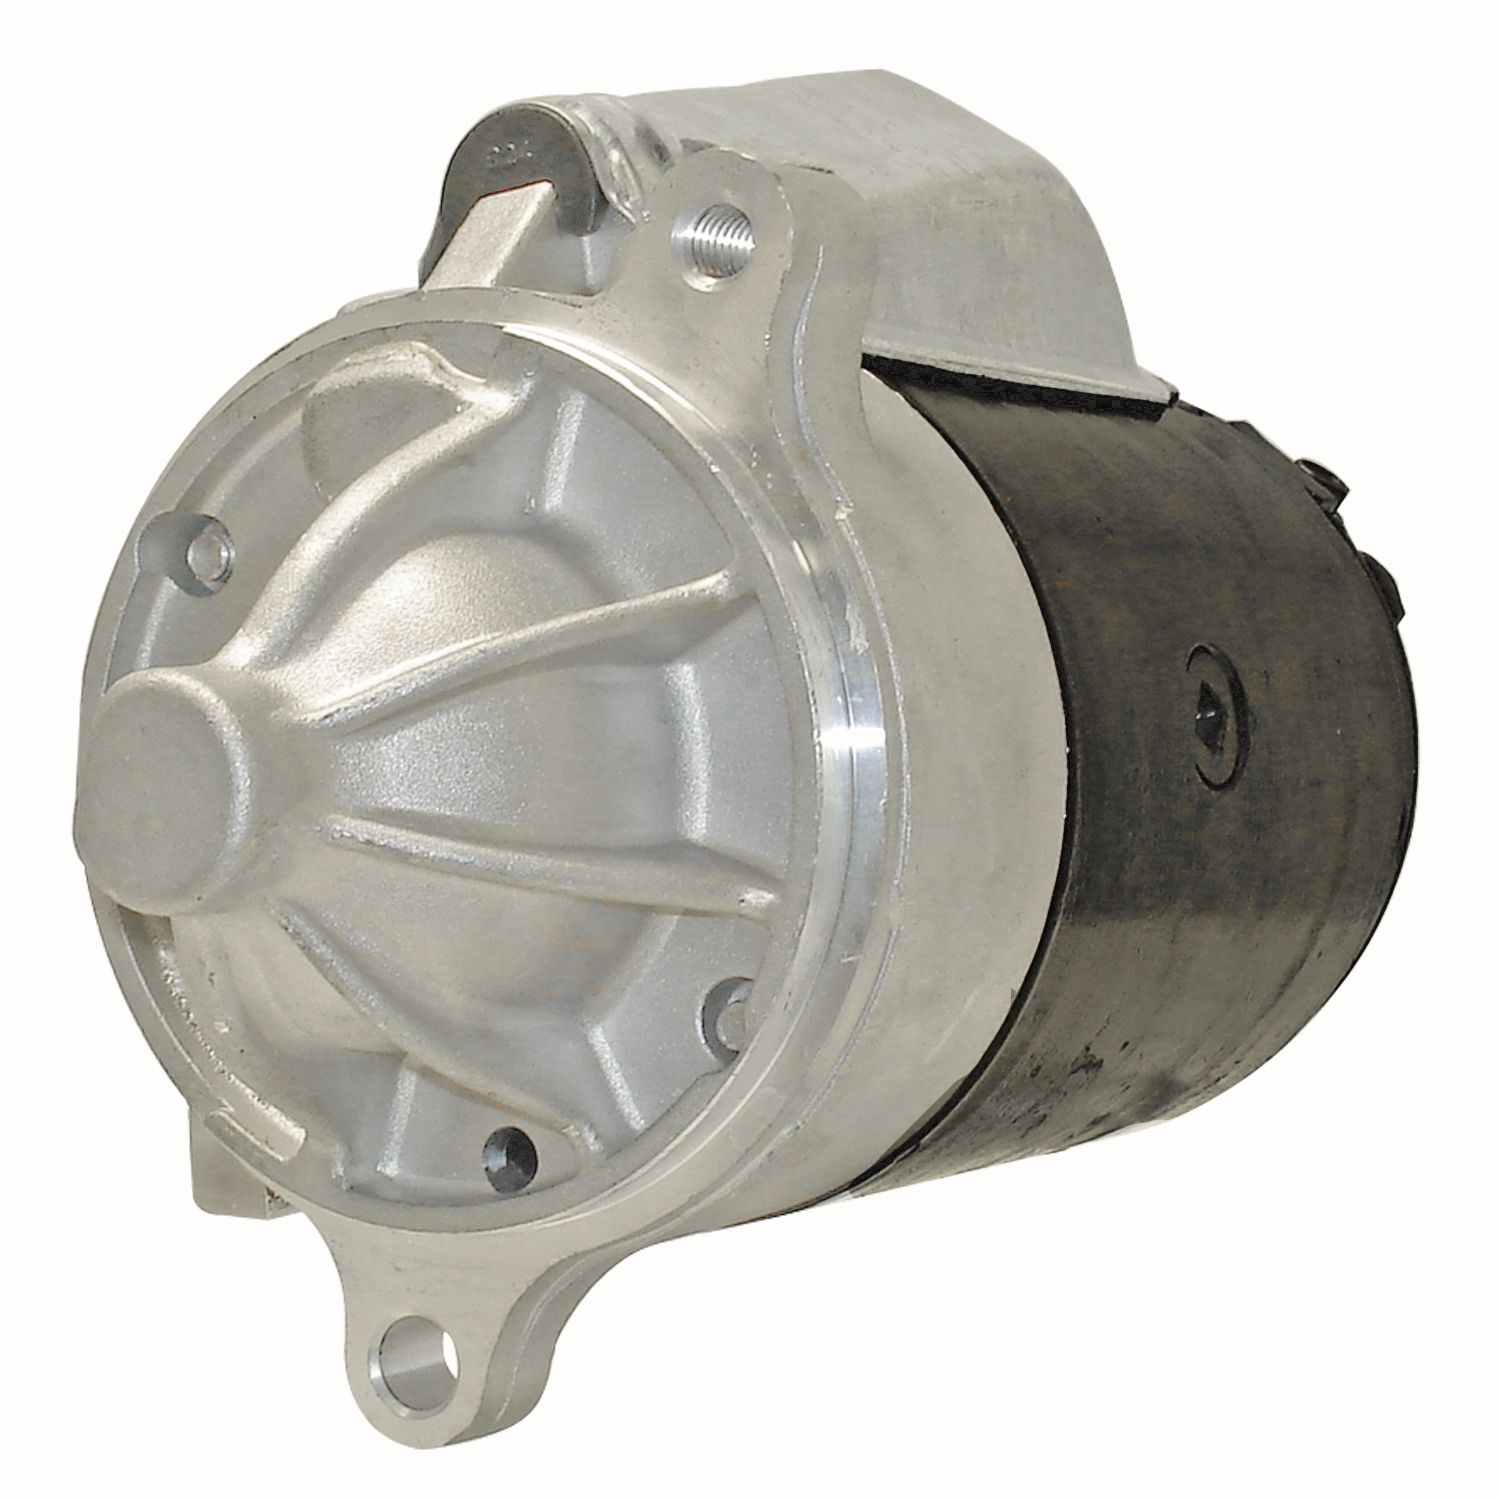 ACDELCO GOLD/PROFESSIONAL - Reman Starter Motor - DCC 336-1028